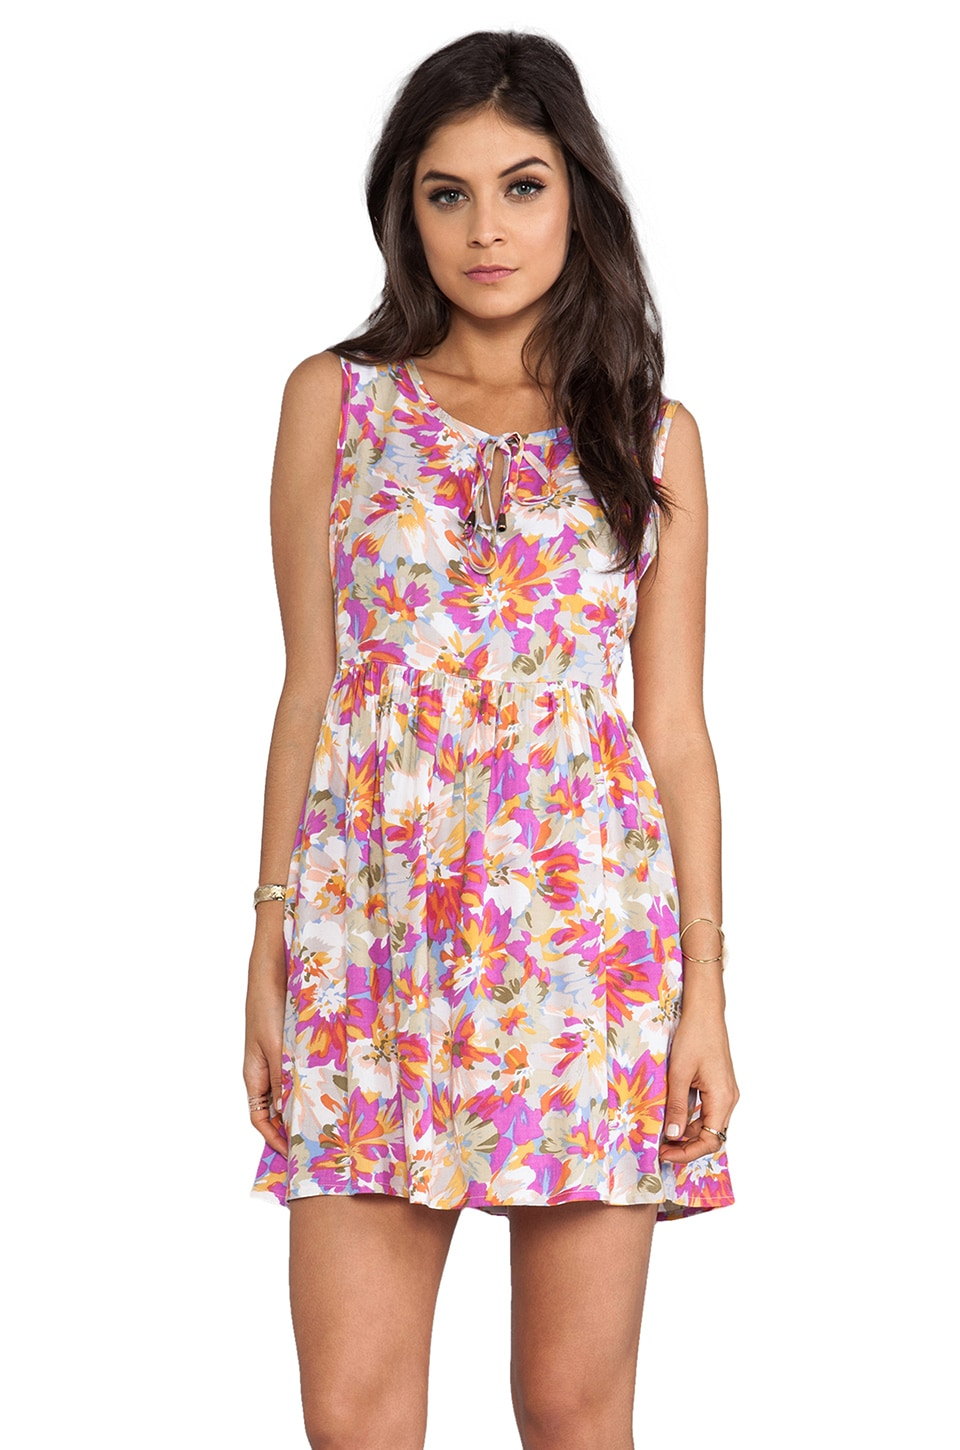 MINKPINK Hey Delilah Mini Dress in Multi